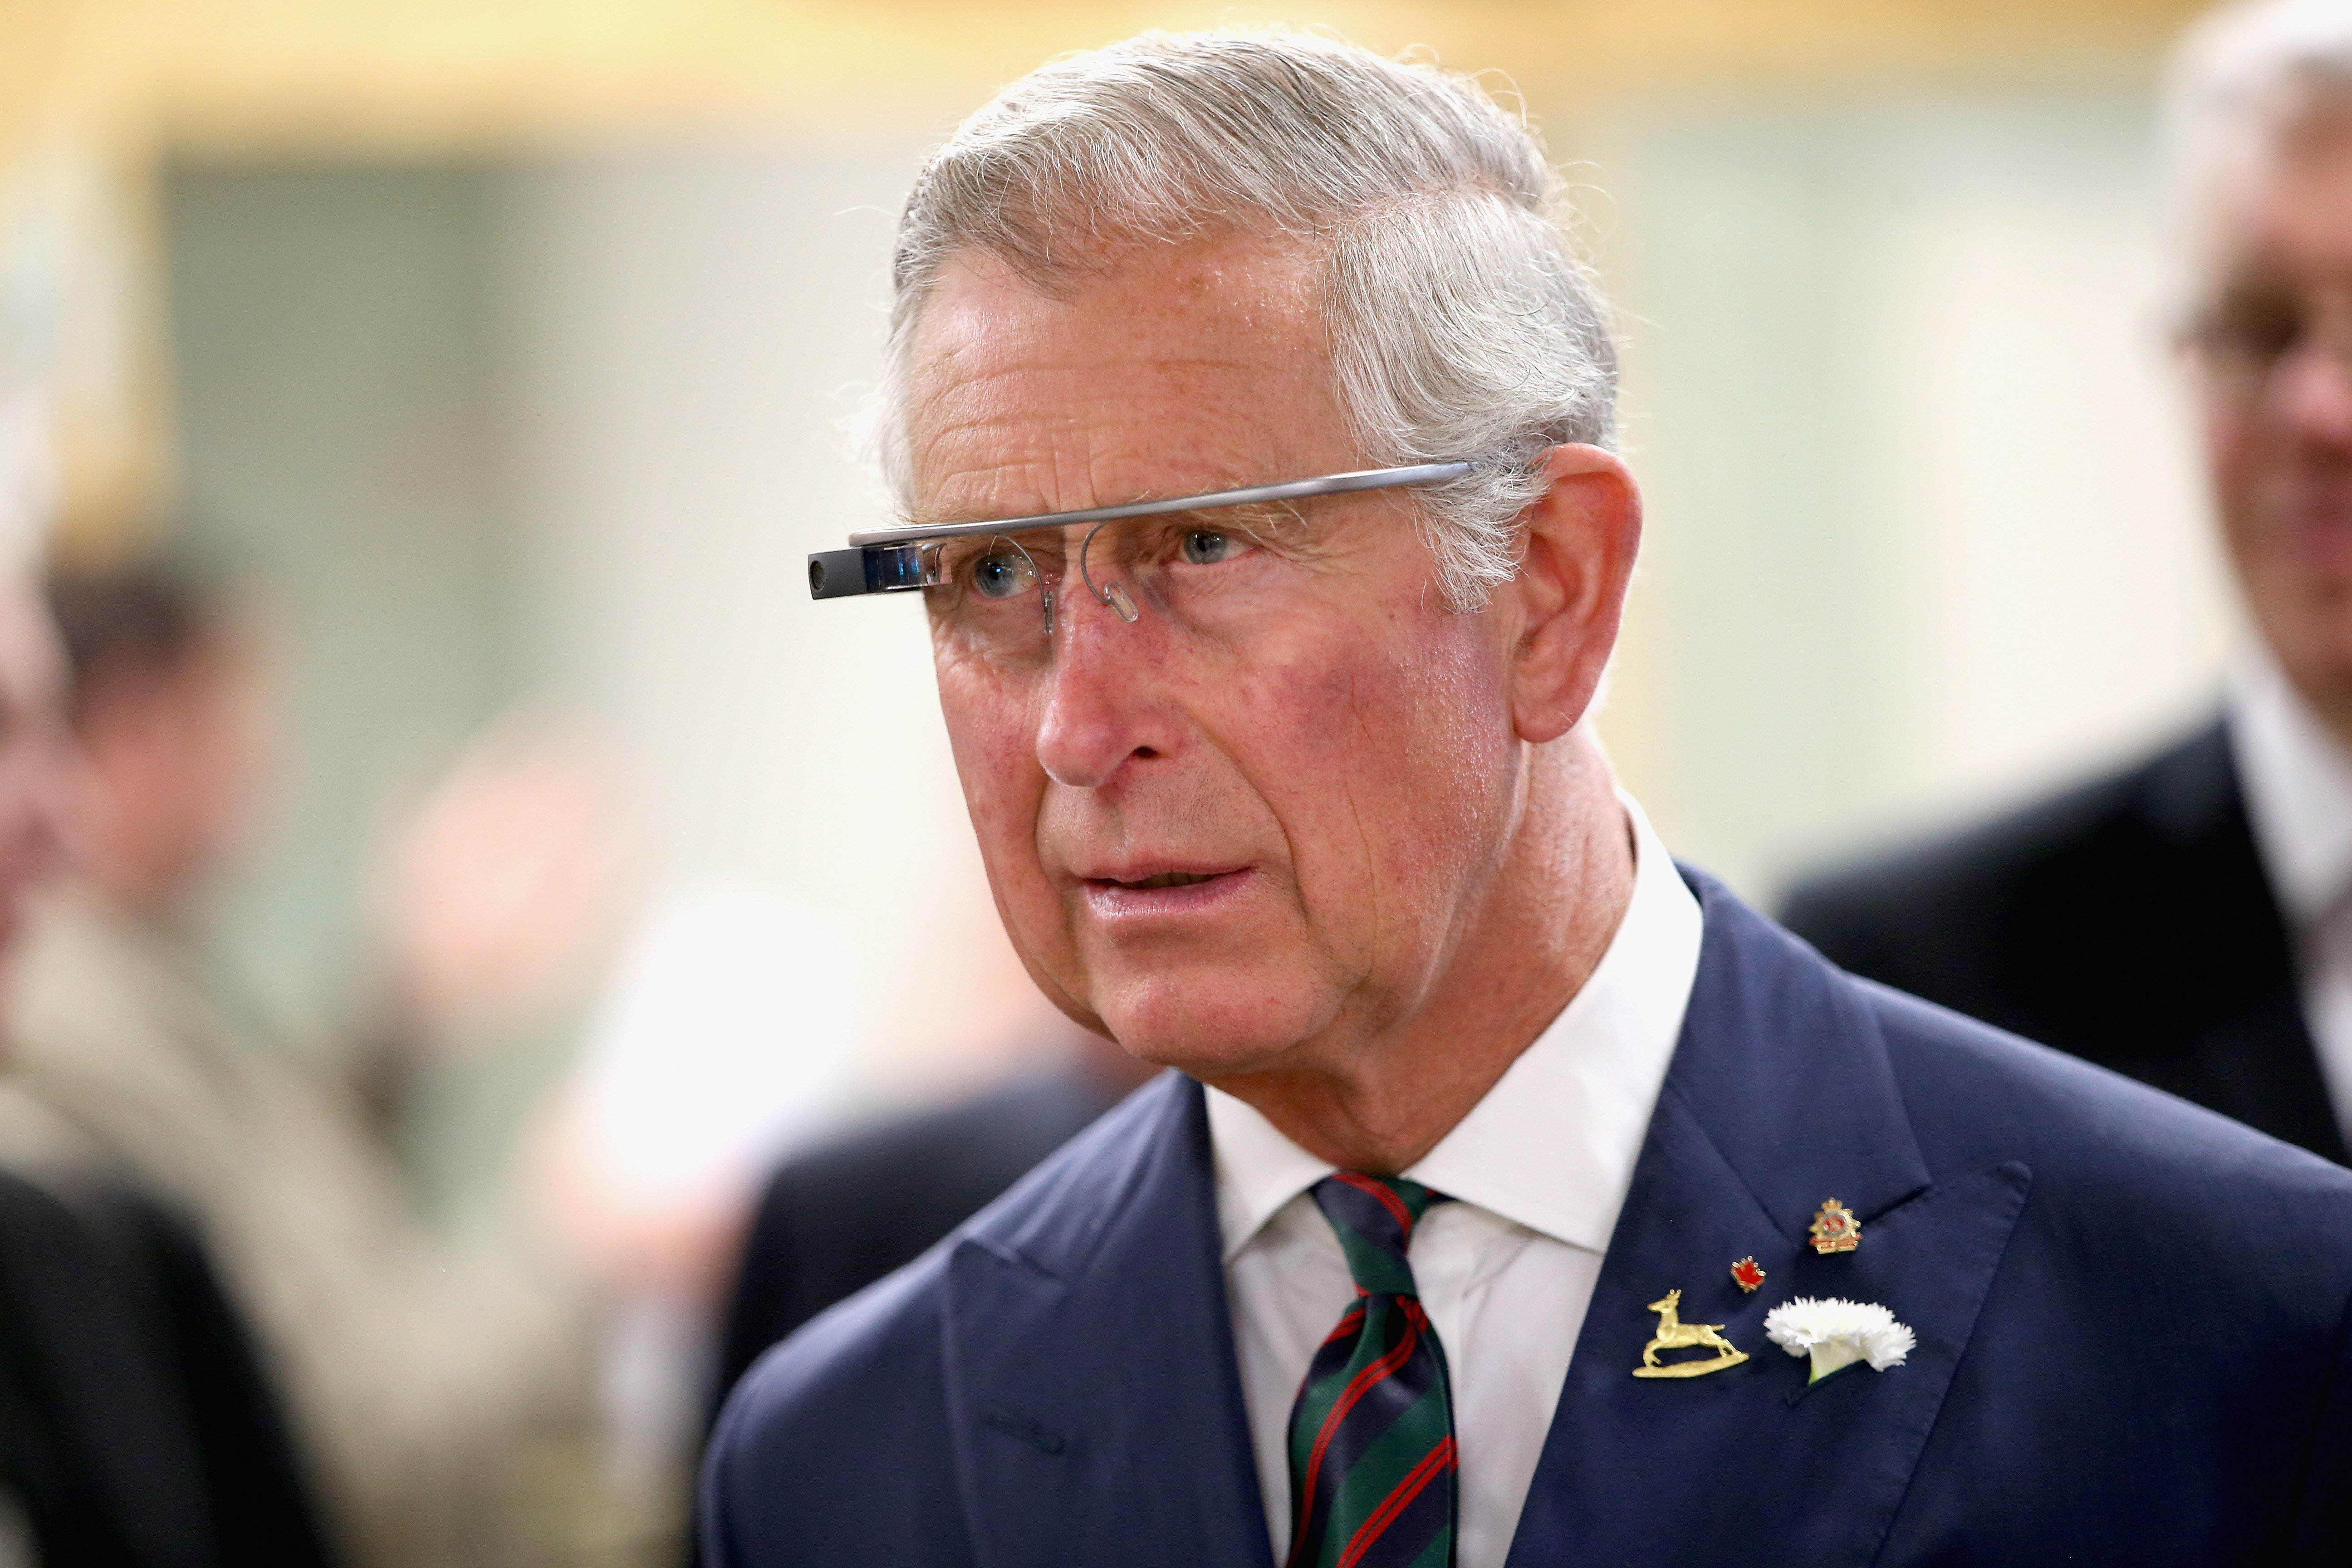 Prince Charles, Prince of Wales tries on 'Google Glass' spectacles as he visits 'Innovation Alley' on May 21, 2014 in Winnipeg, Canada.